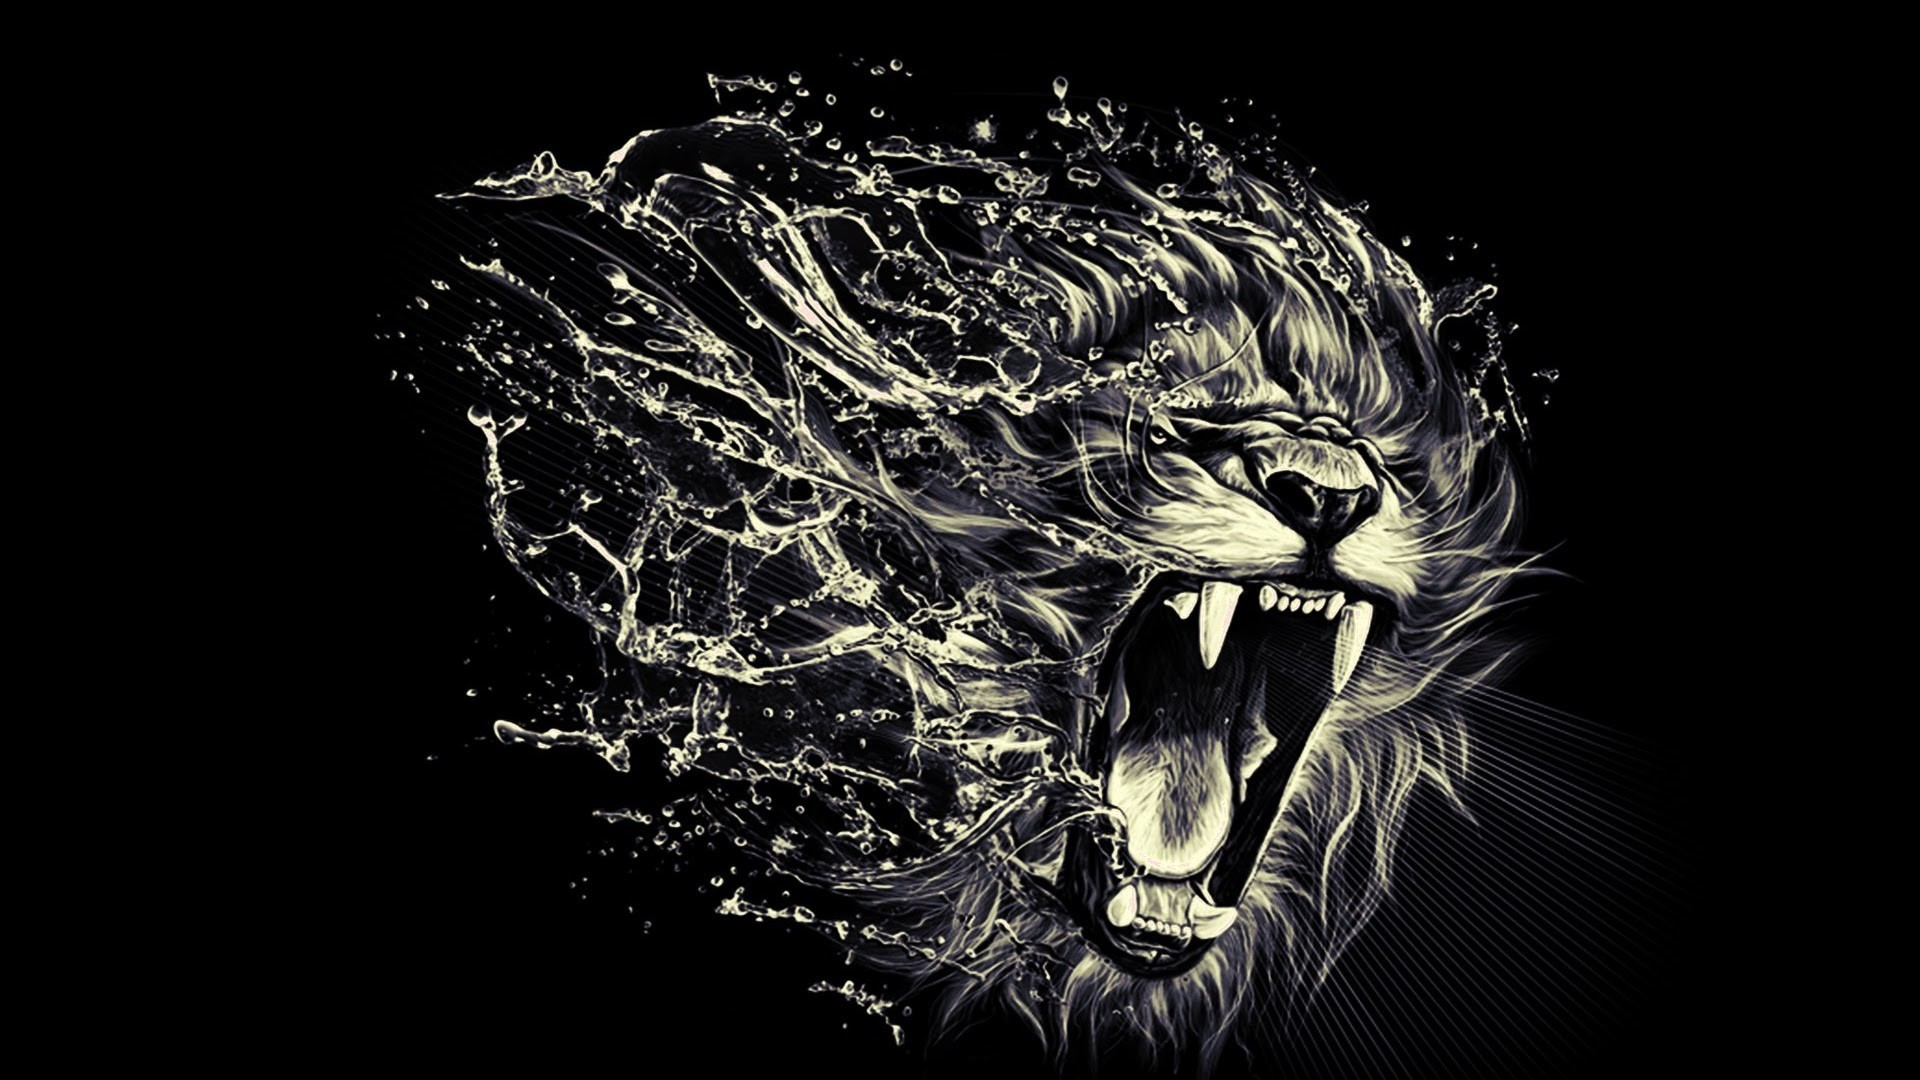 Res: 1920x1080, Roaring Lion Wallpaper 10